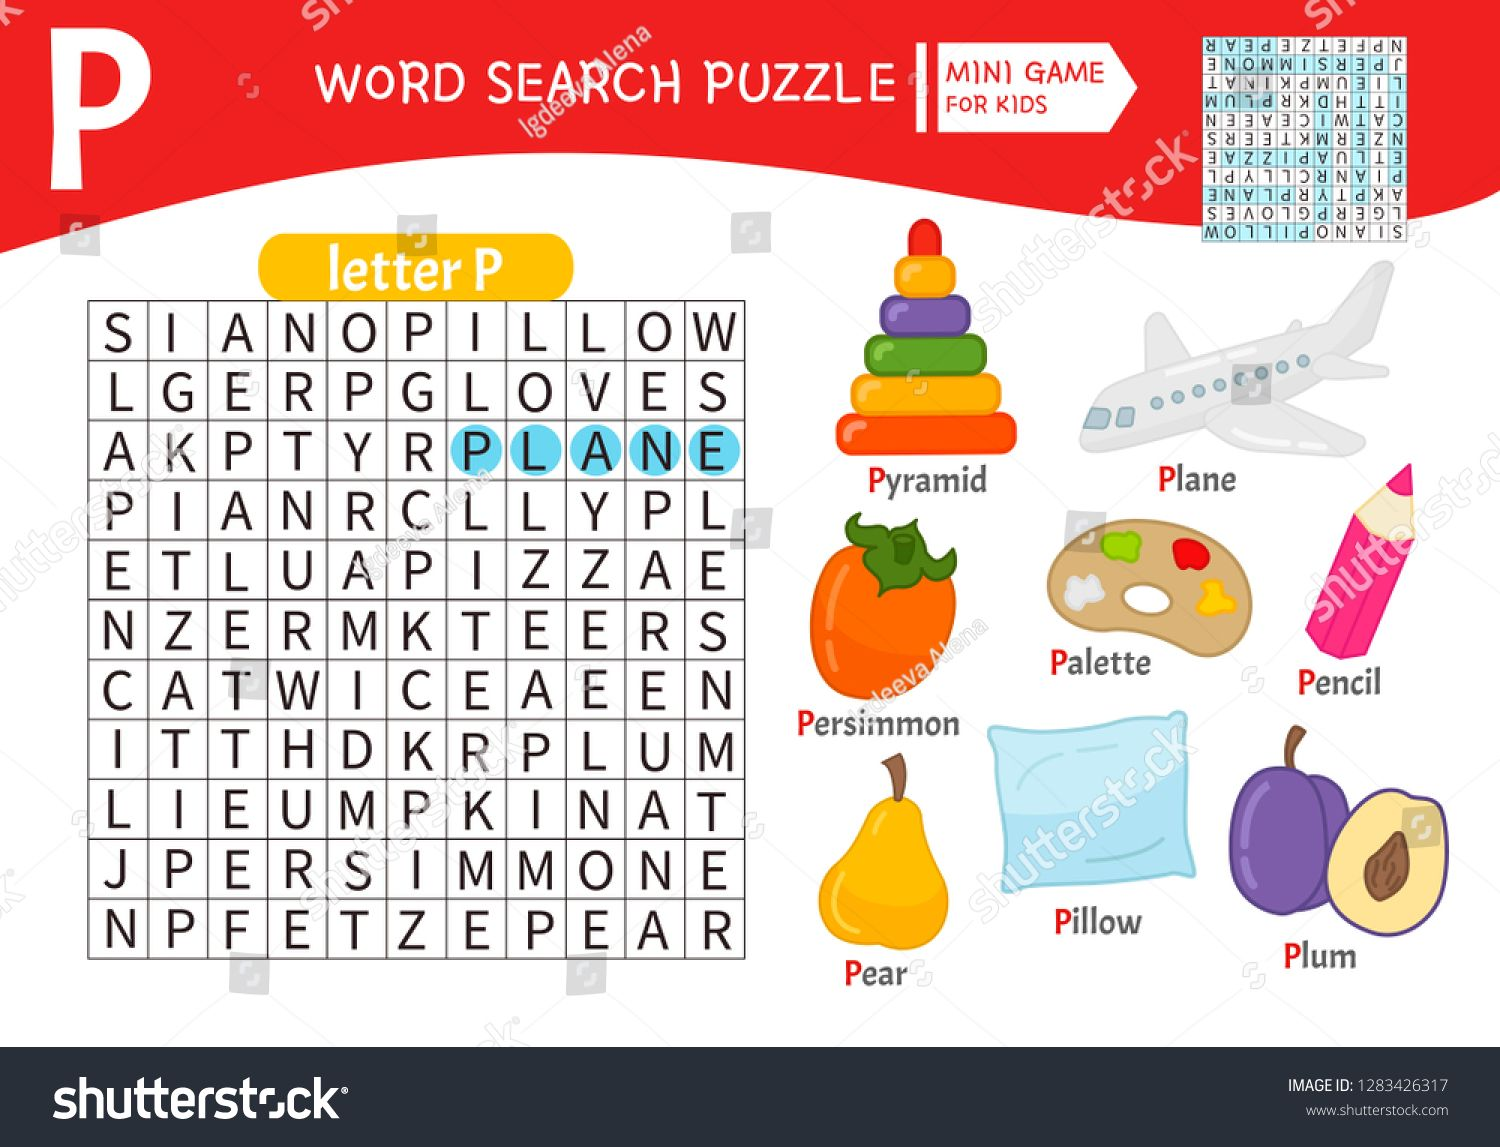 Words Puzzle Children Educational Game Learning Vocabulary Letter P Cartoon Objects On A Letter P Ad Sp Educational Games For Kids Word Puzzles P Words